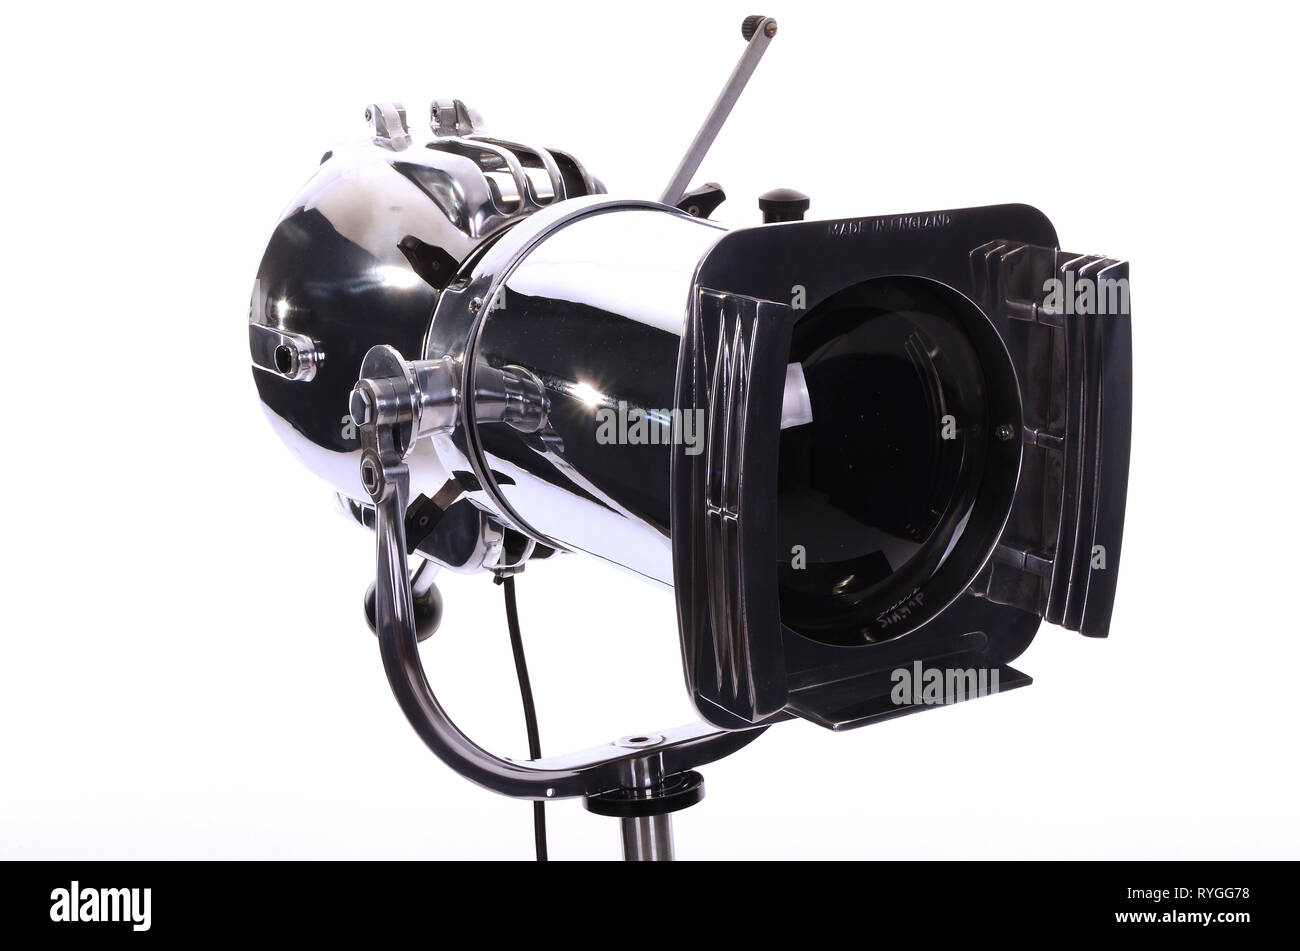 https www alamy com 1950s film and theatre lighting equipment strand electric stage spot light image240694476 html